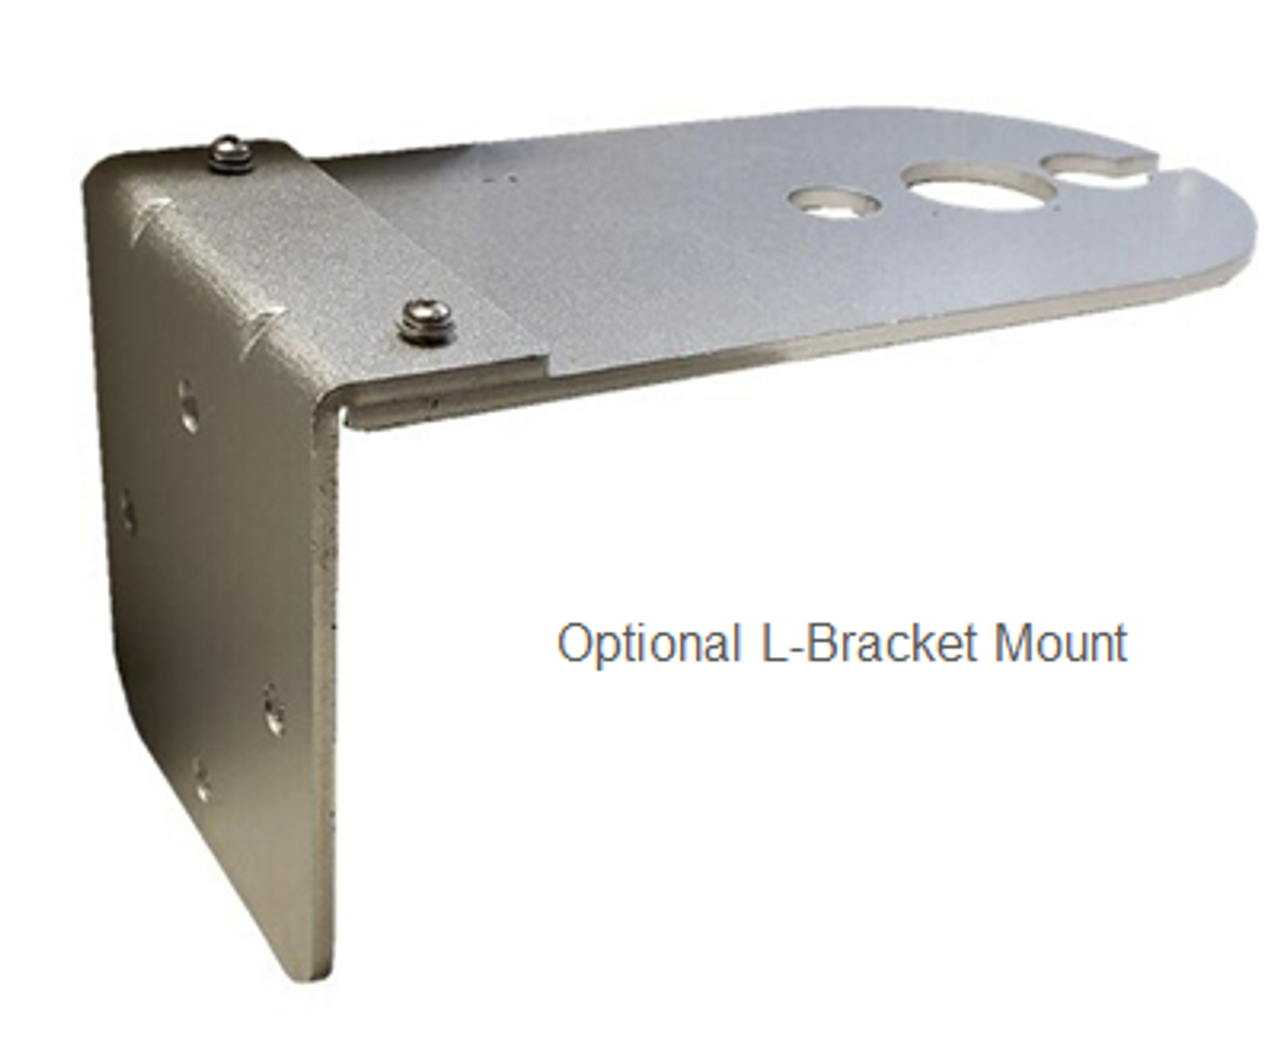 Optional L-Bracket Antenna Mount